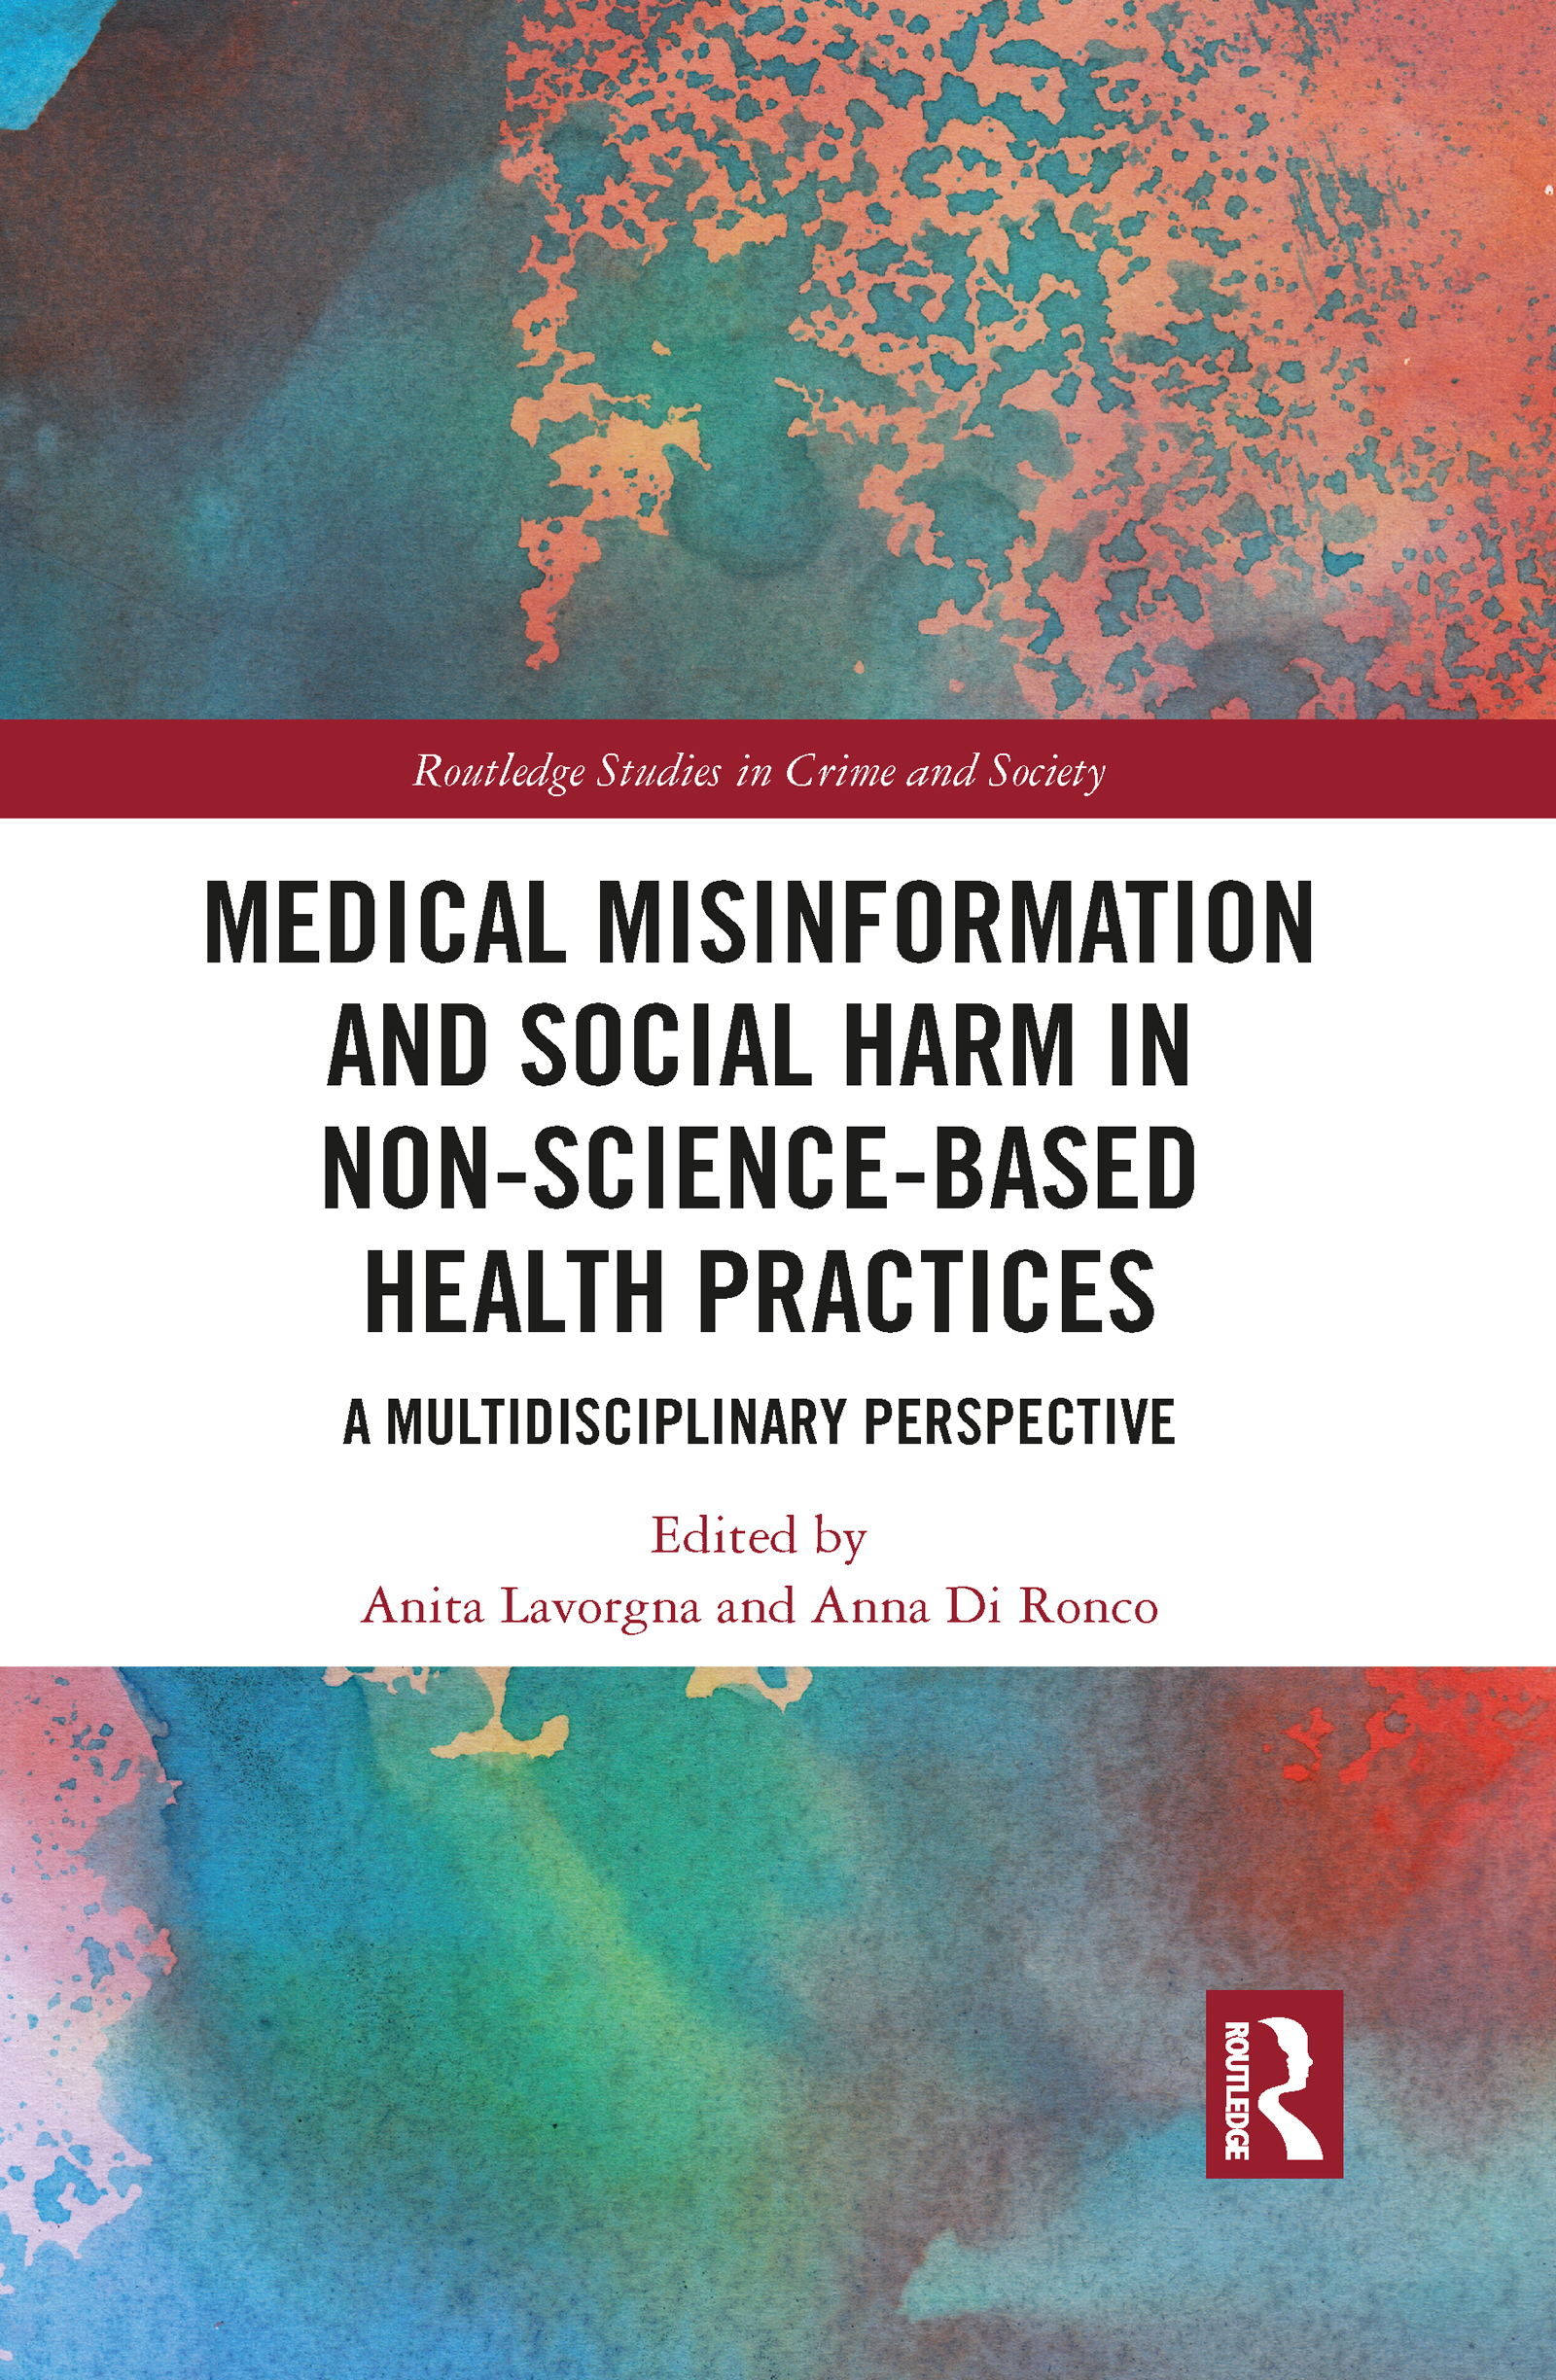 Medical Misinformation and Social Harm in Non-Science Based Health Practices